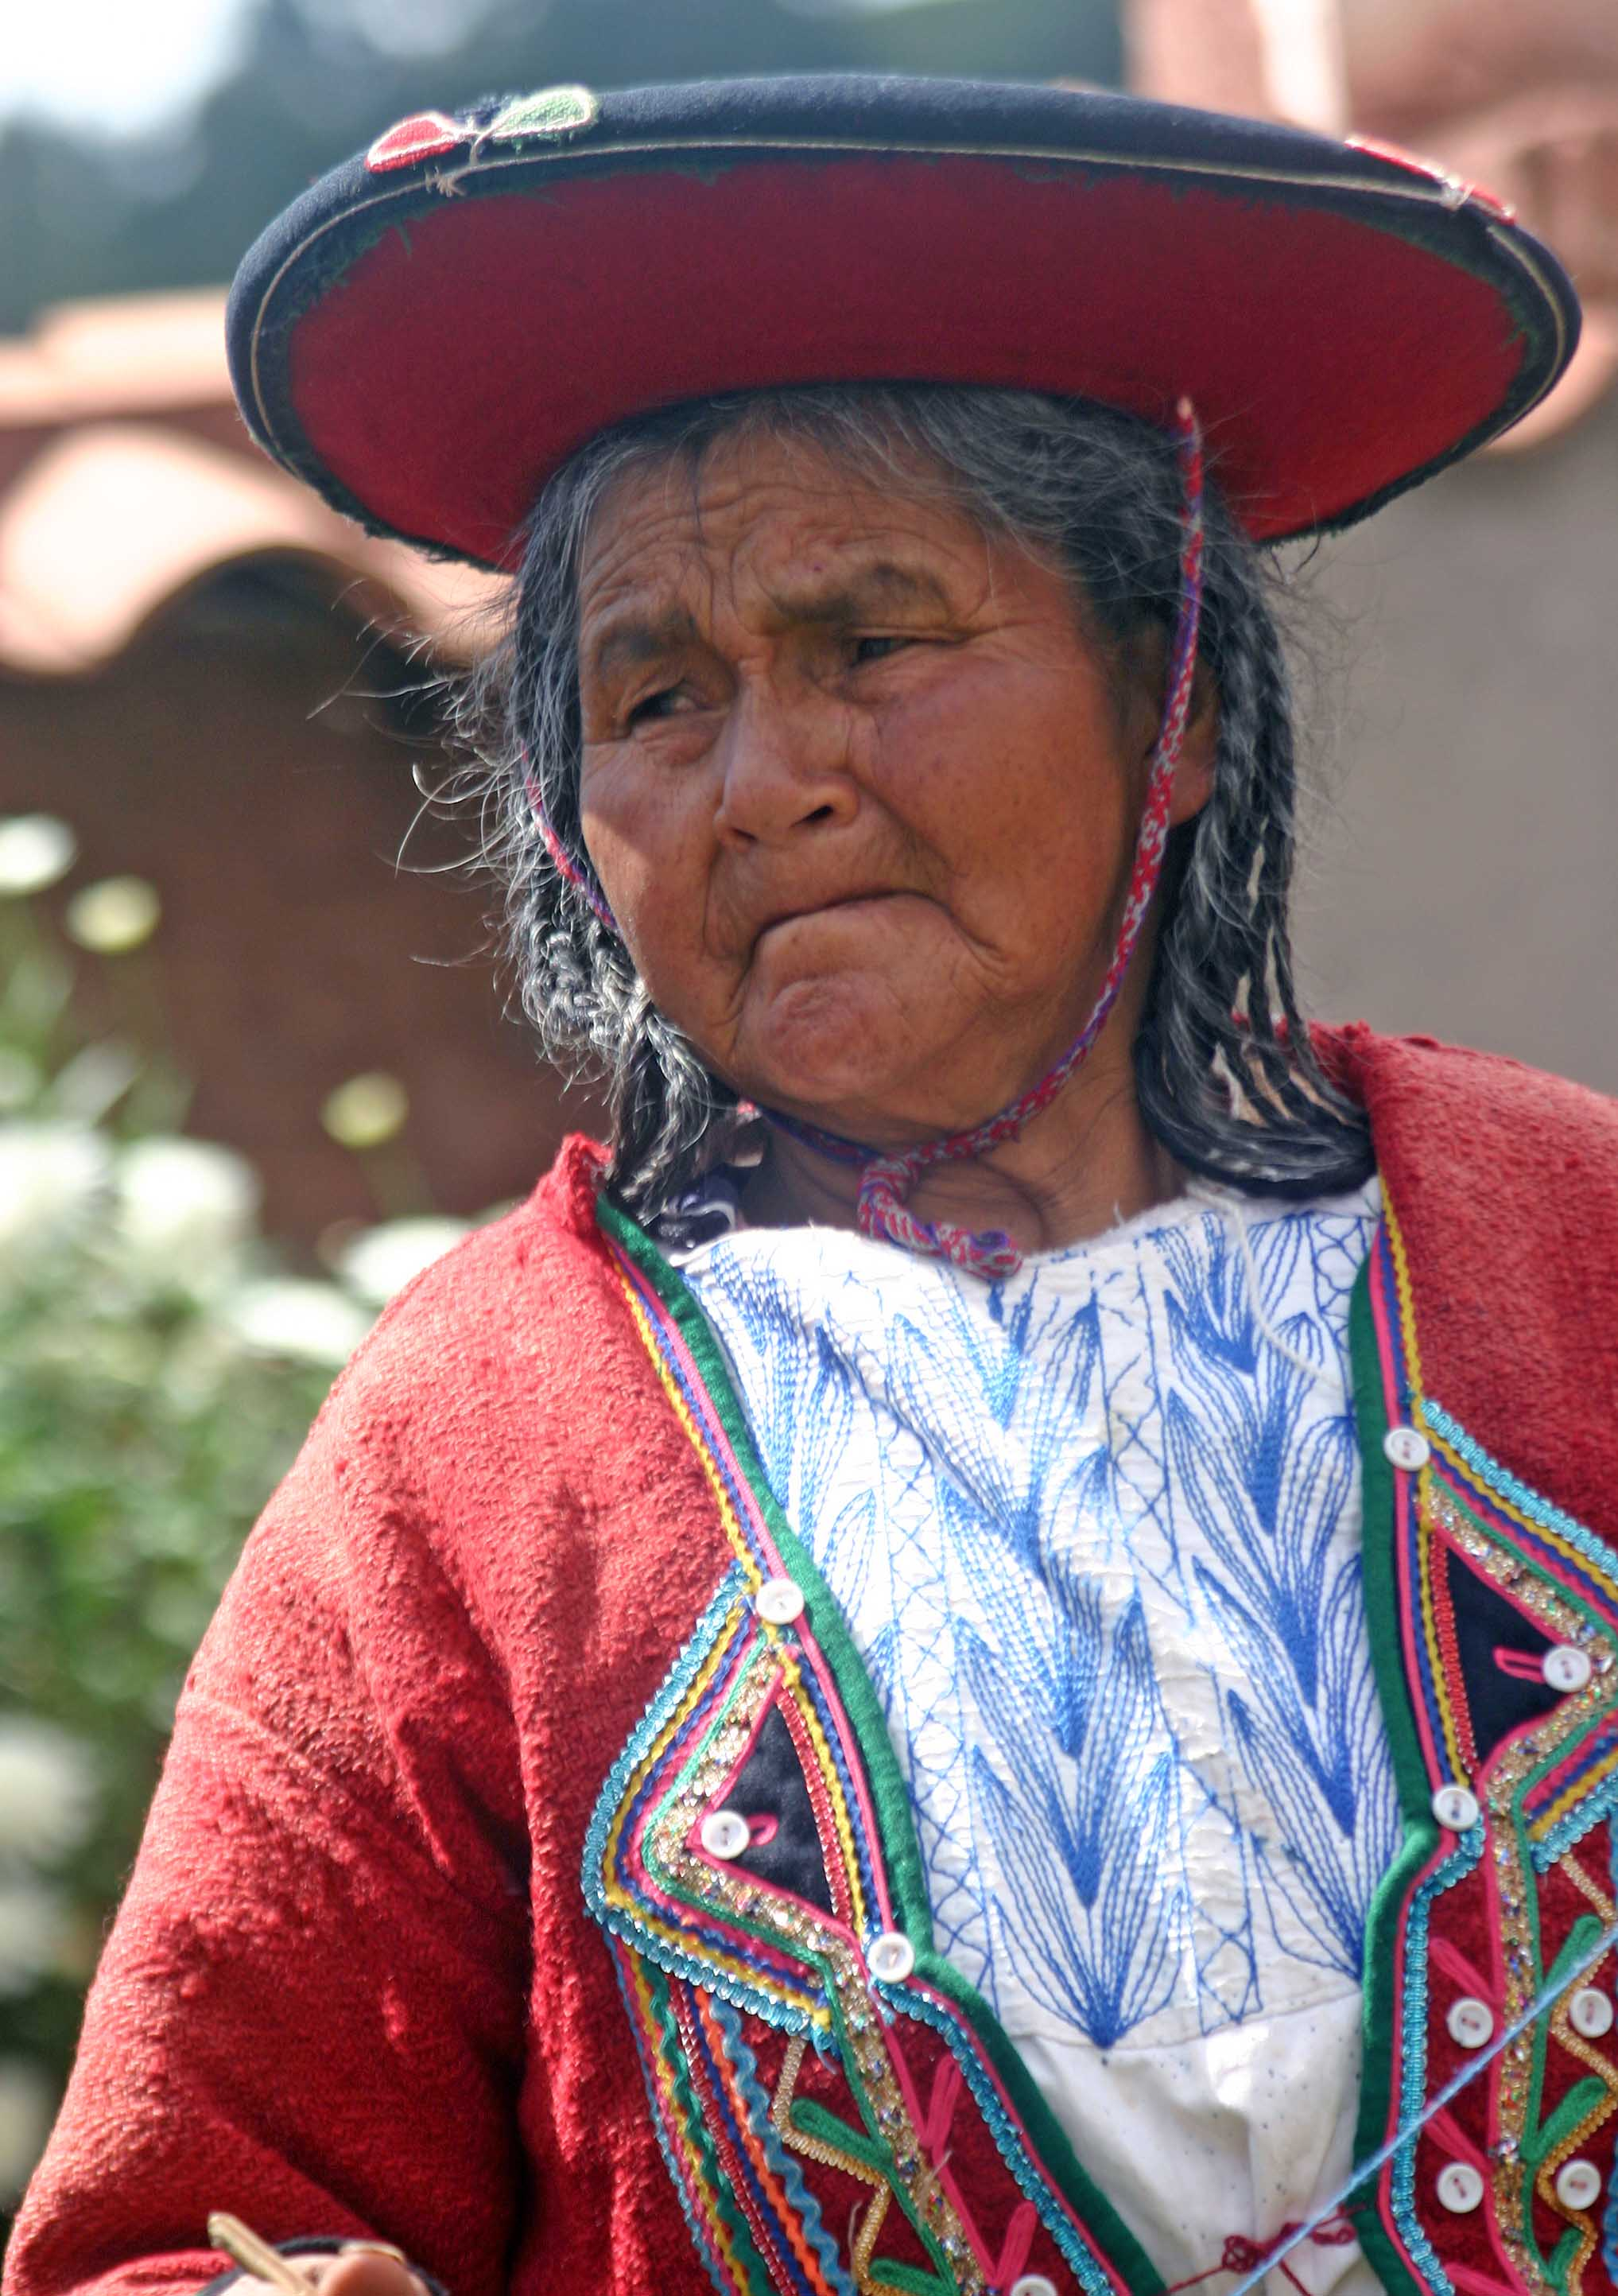 Peru South America People and Places Page 2 2035x2887